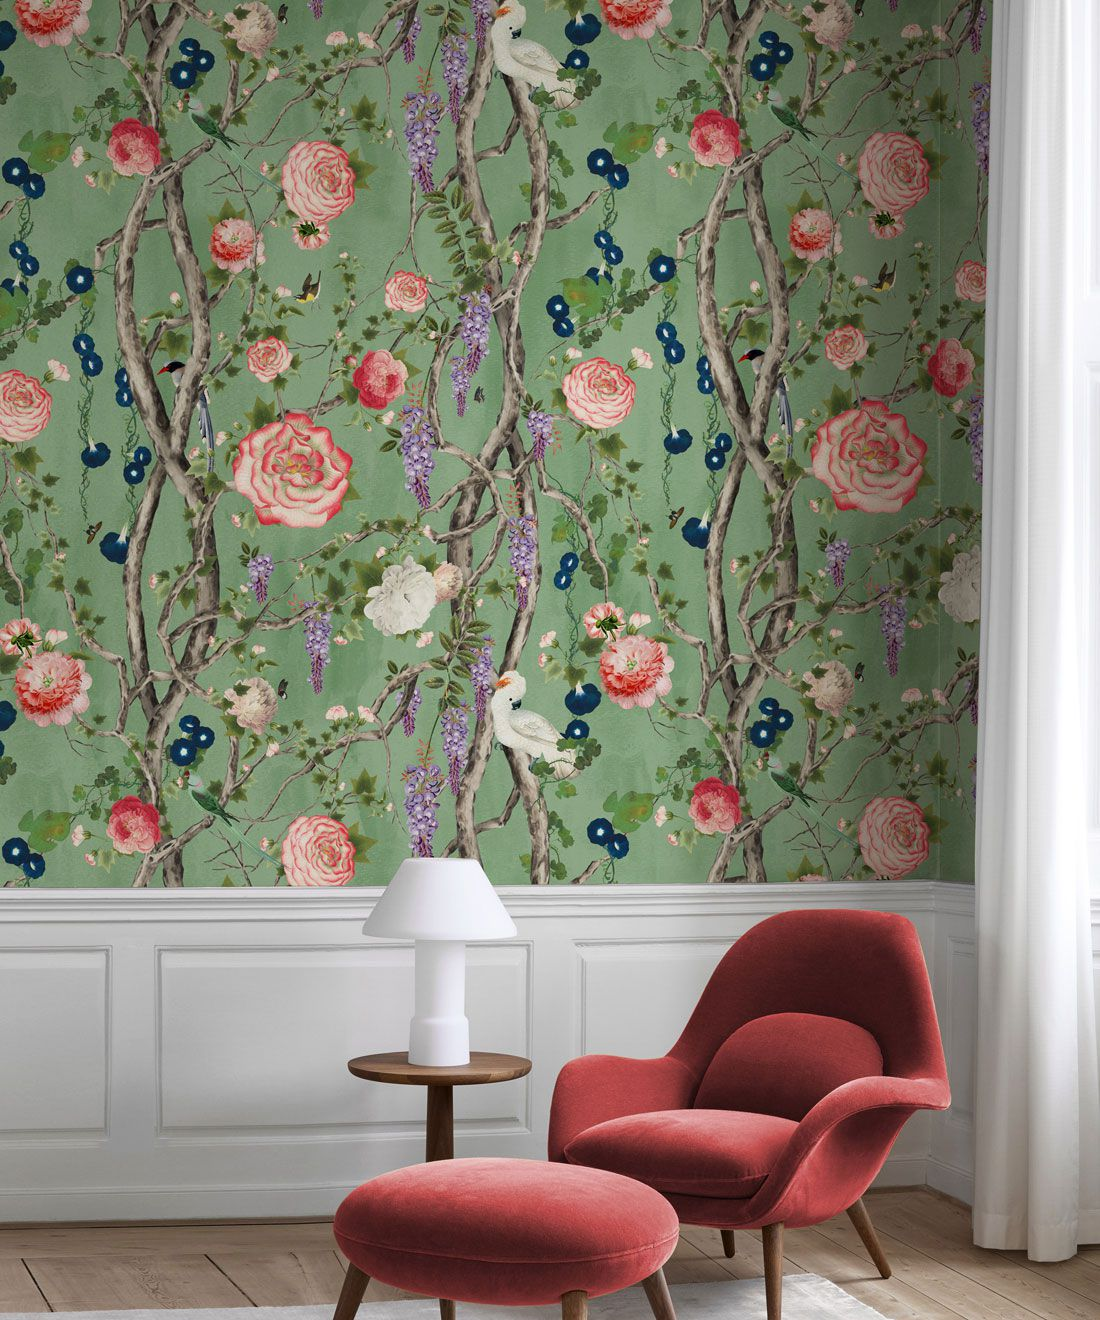 Empress Wallpaper • Romantic Wallpaper • Floral Wallpaper • Chinoiserie Wallpaper • Green color wallpaper insitu • Tea Garden